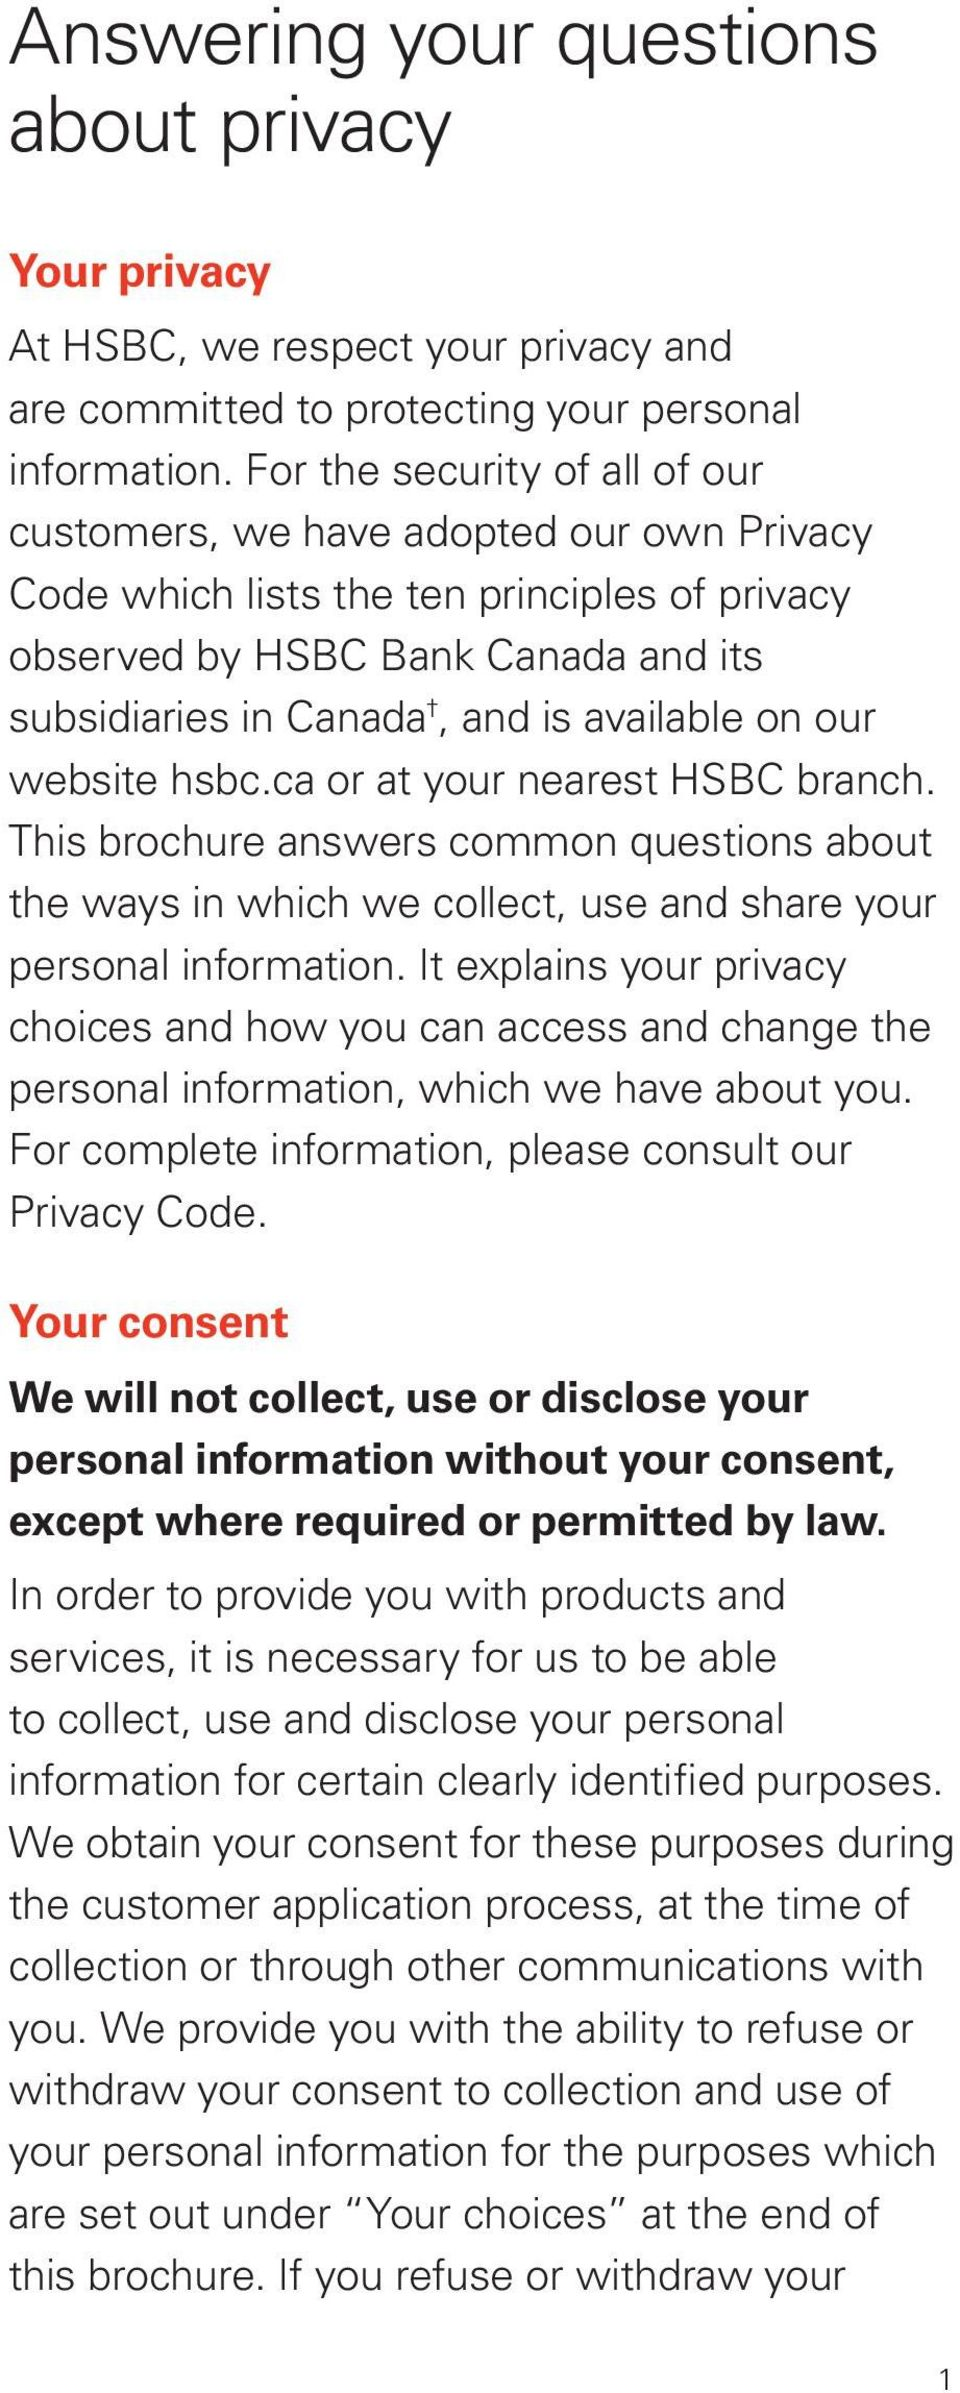 on our website hsbc.ca or at your nearest HSBC branch. This brochure answers common questions about the ways in which we collect, use and share your personal information.